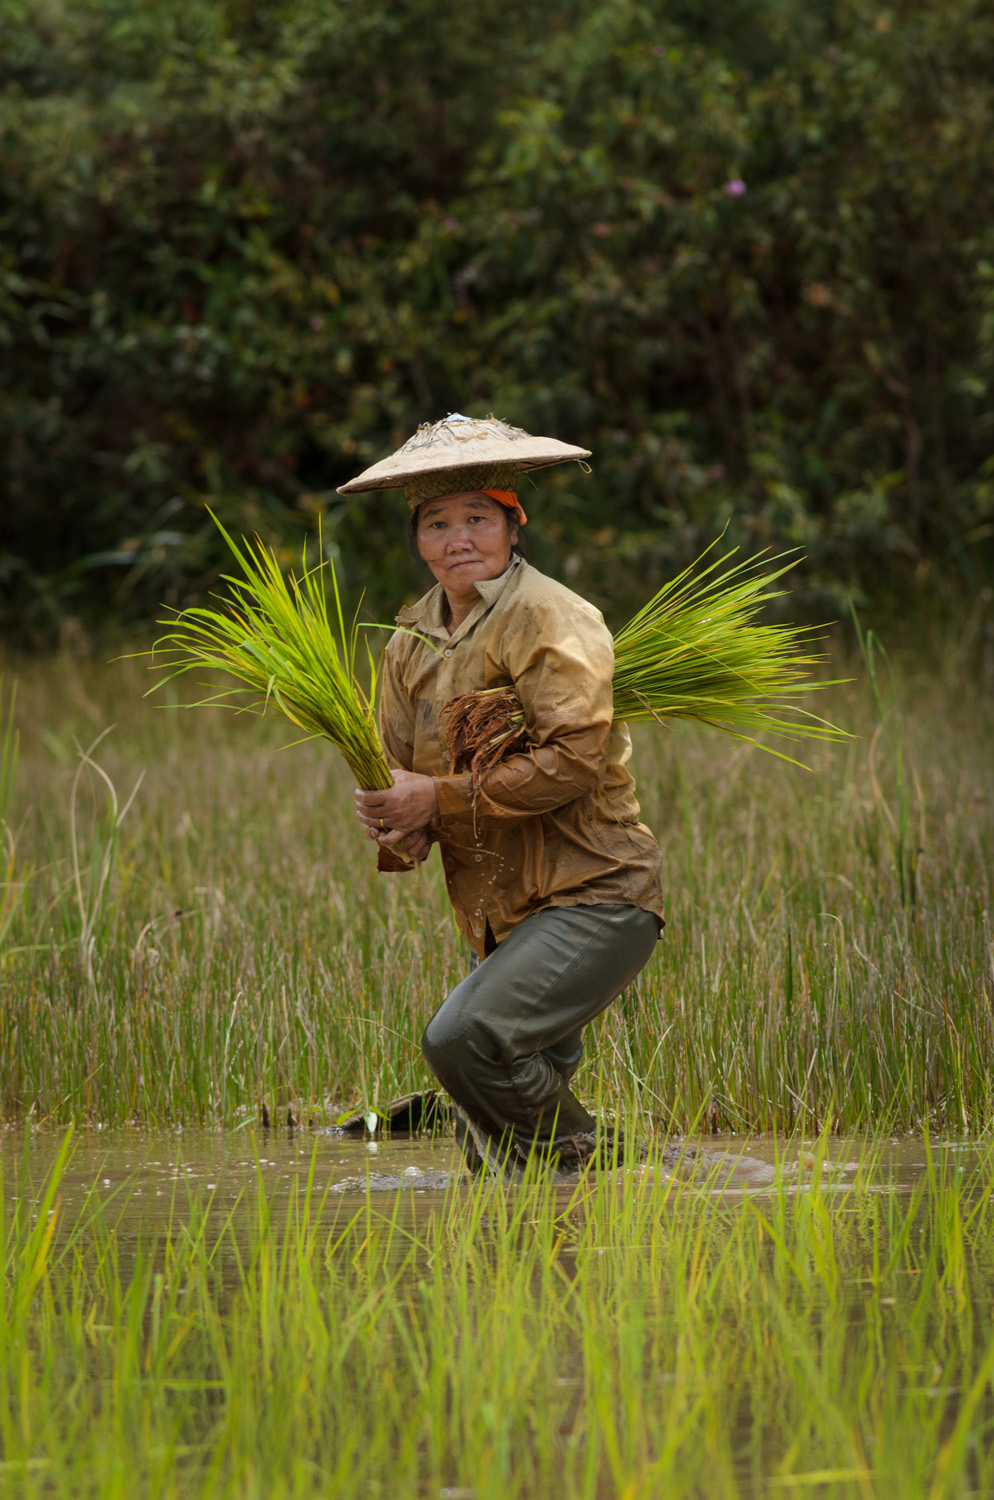 A woman plants rice in a field abutting the jungle in Pa Budah, Sarawak, Malaysia. An archaeological pollen core sample taken near this site shows rice cultivation going back thousands of years.